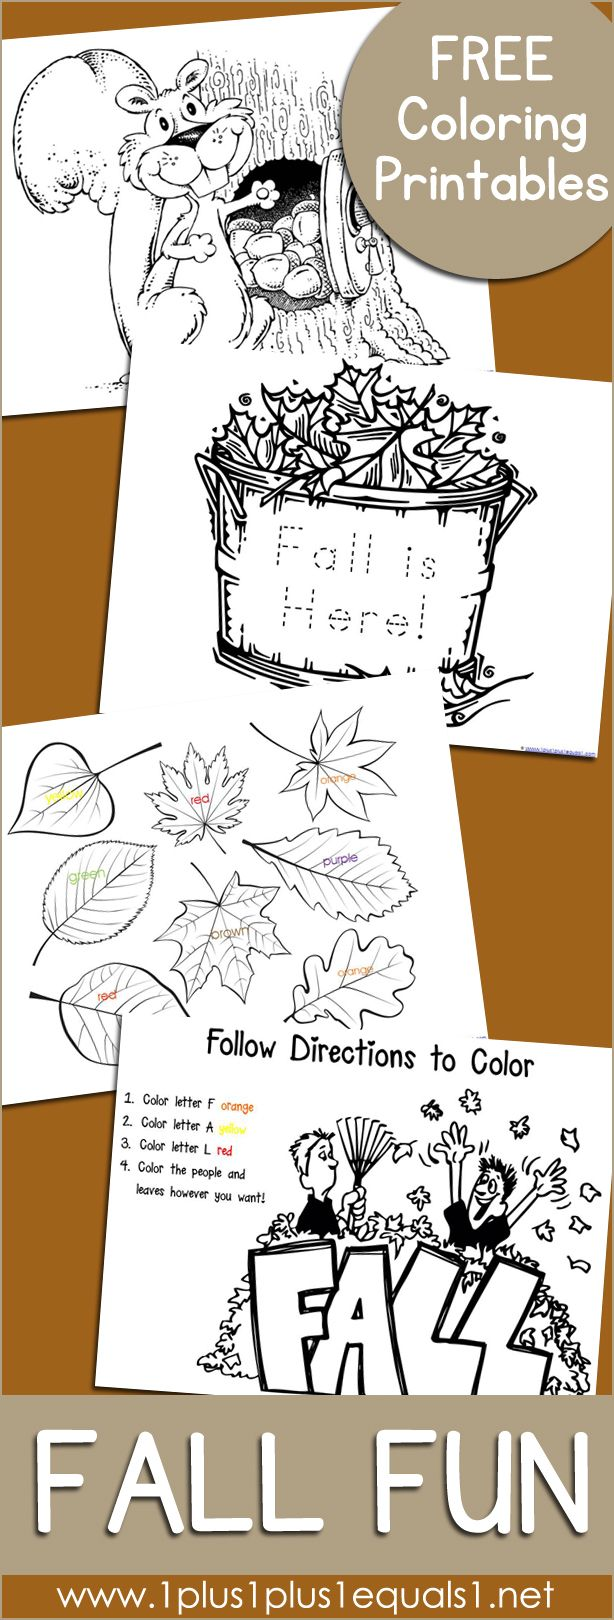 Free Fall Fun Coloring ~ coloring pages and coloring activities for ...